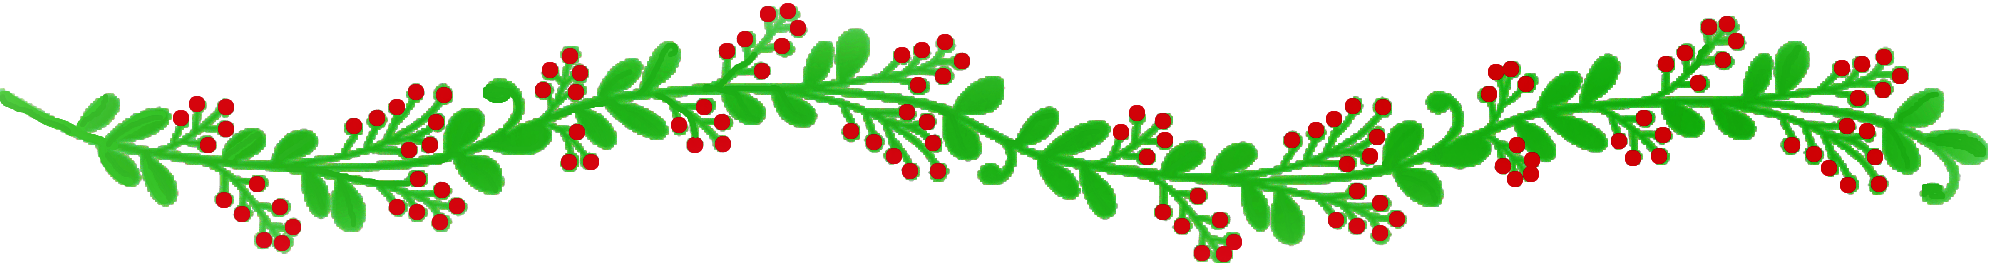 The magic of rosemary. Harvest clipart divider